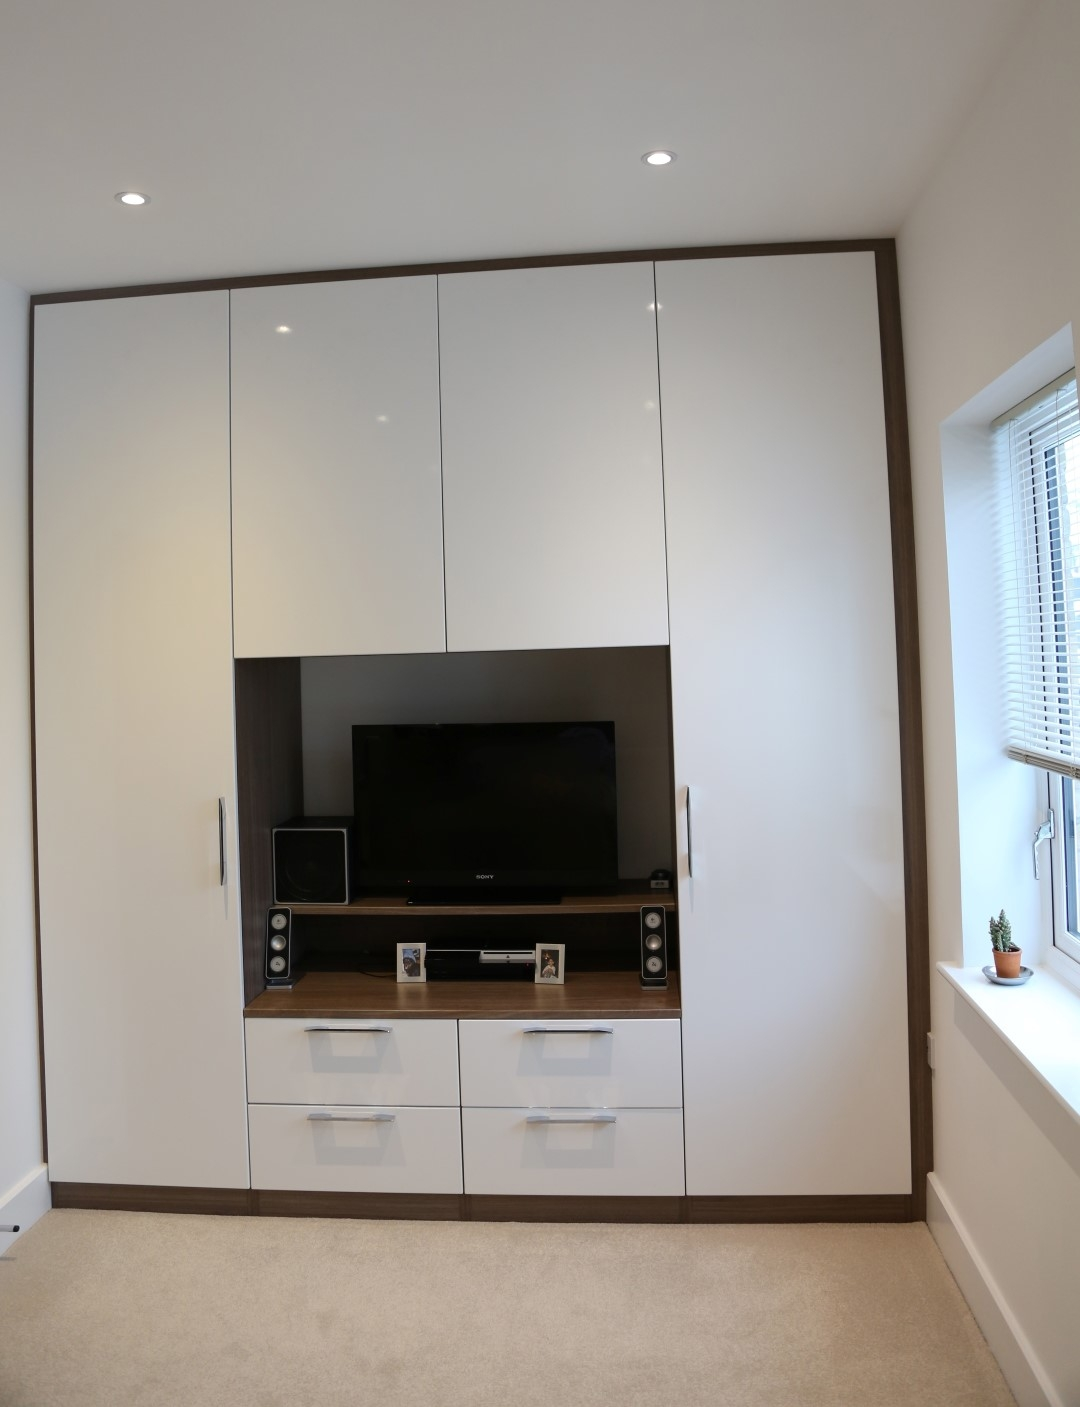 Tv Unit In Wardrobes Home Sweet Home Pinterest Bird Houses Intended For Fitted Wall Units Living Room (View 12 of 15)